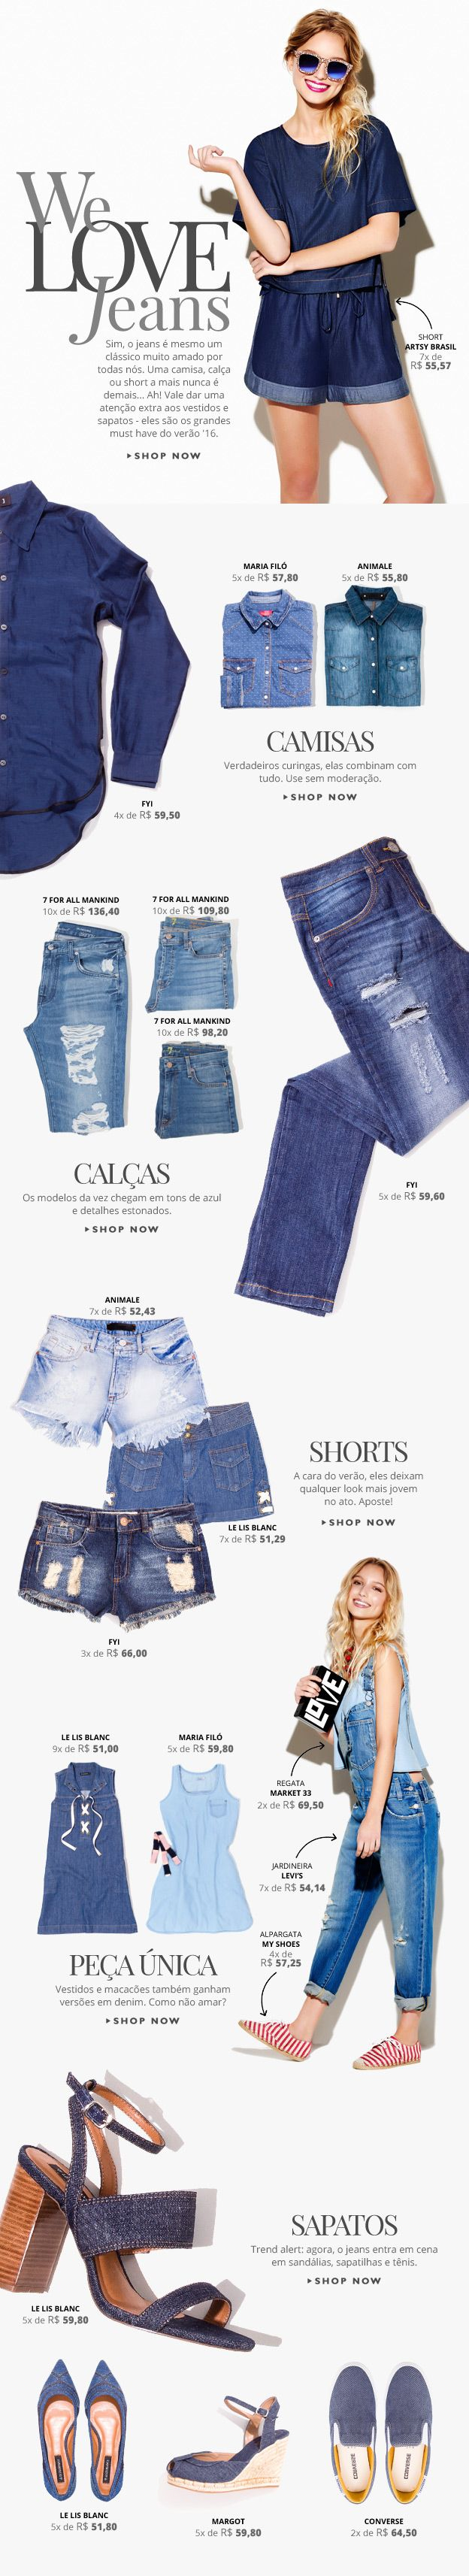 We Love Jeans - Email Newsletter on Behance | Fashion E-commerce | OQVestir